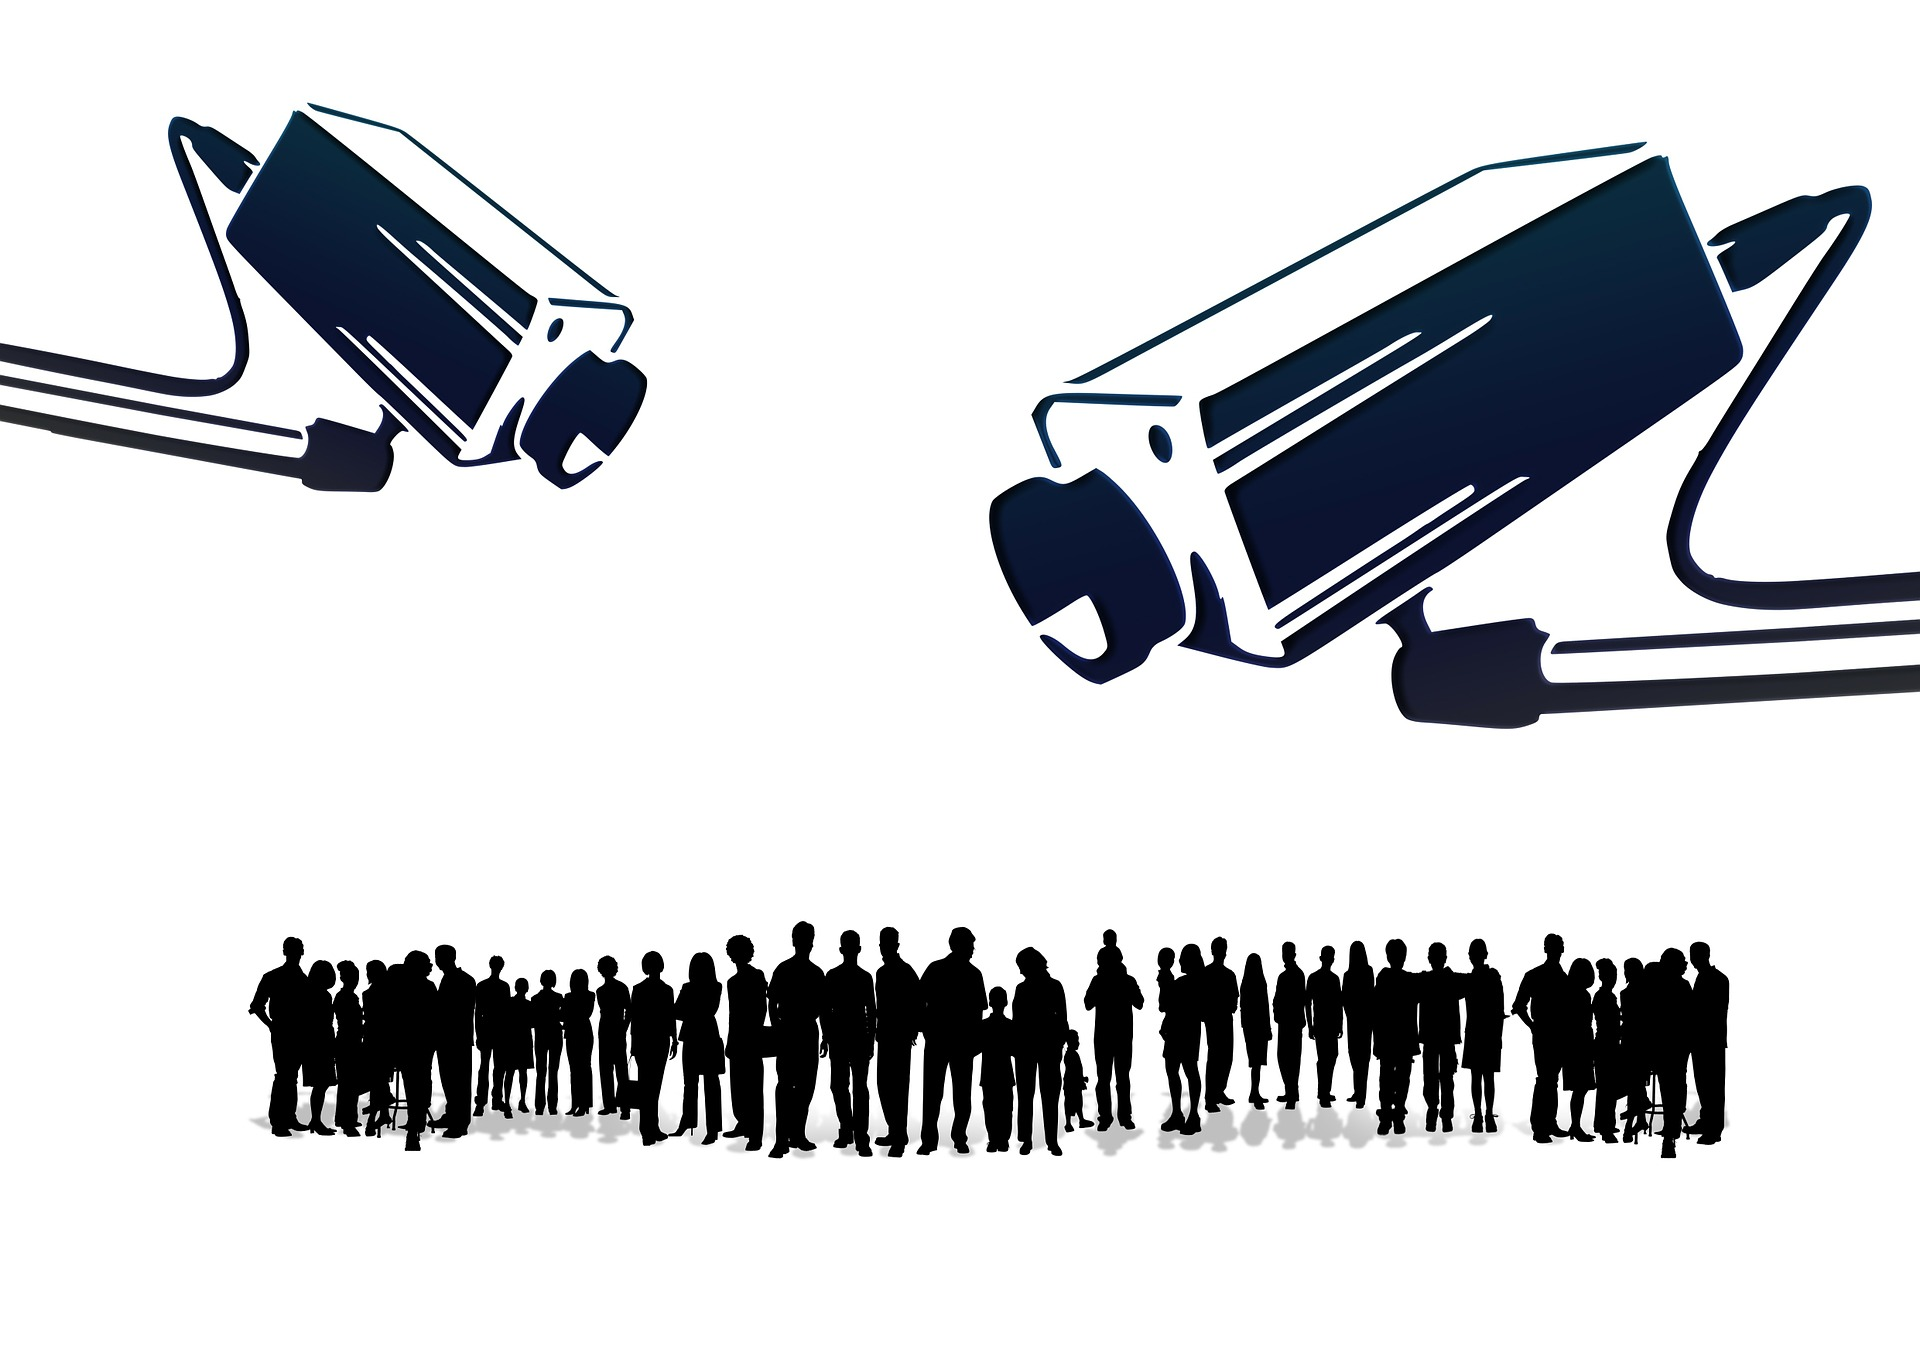 facial recognition and mass surveillance